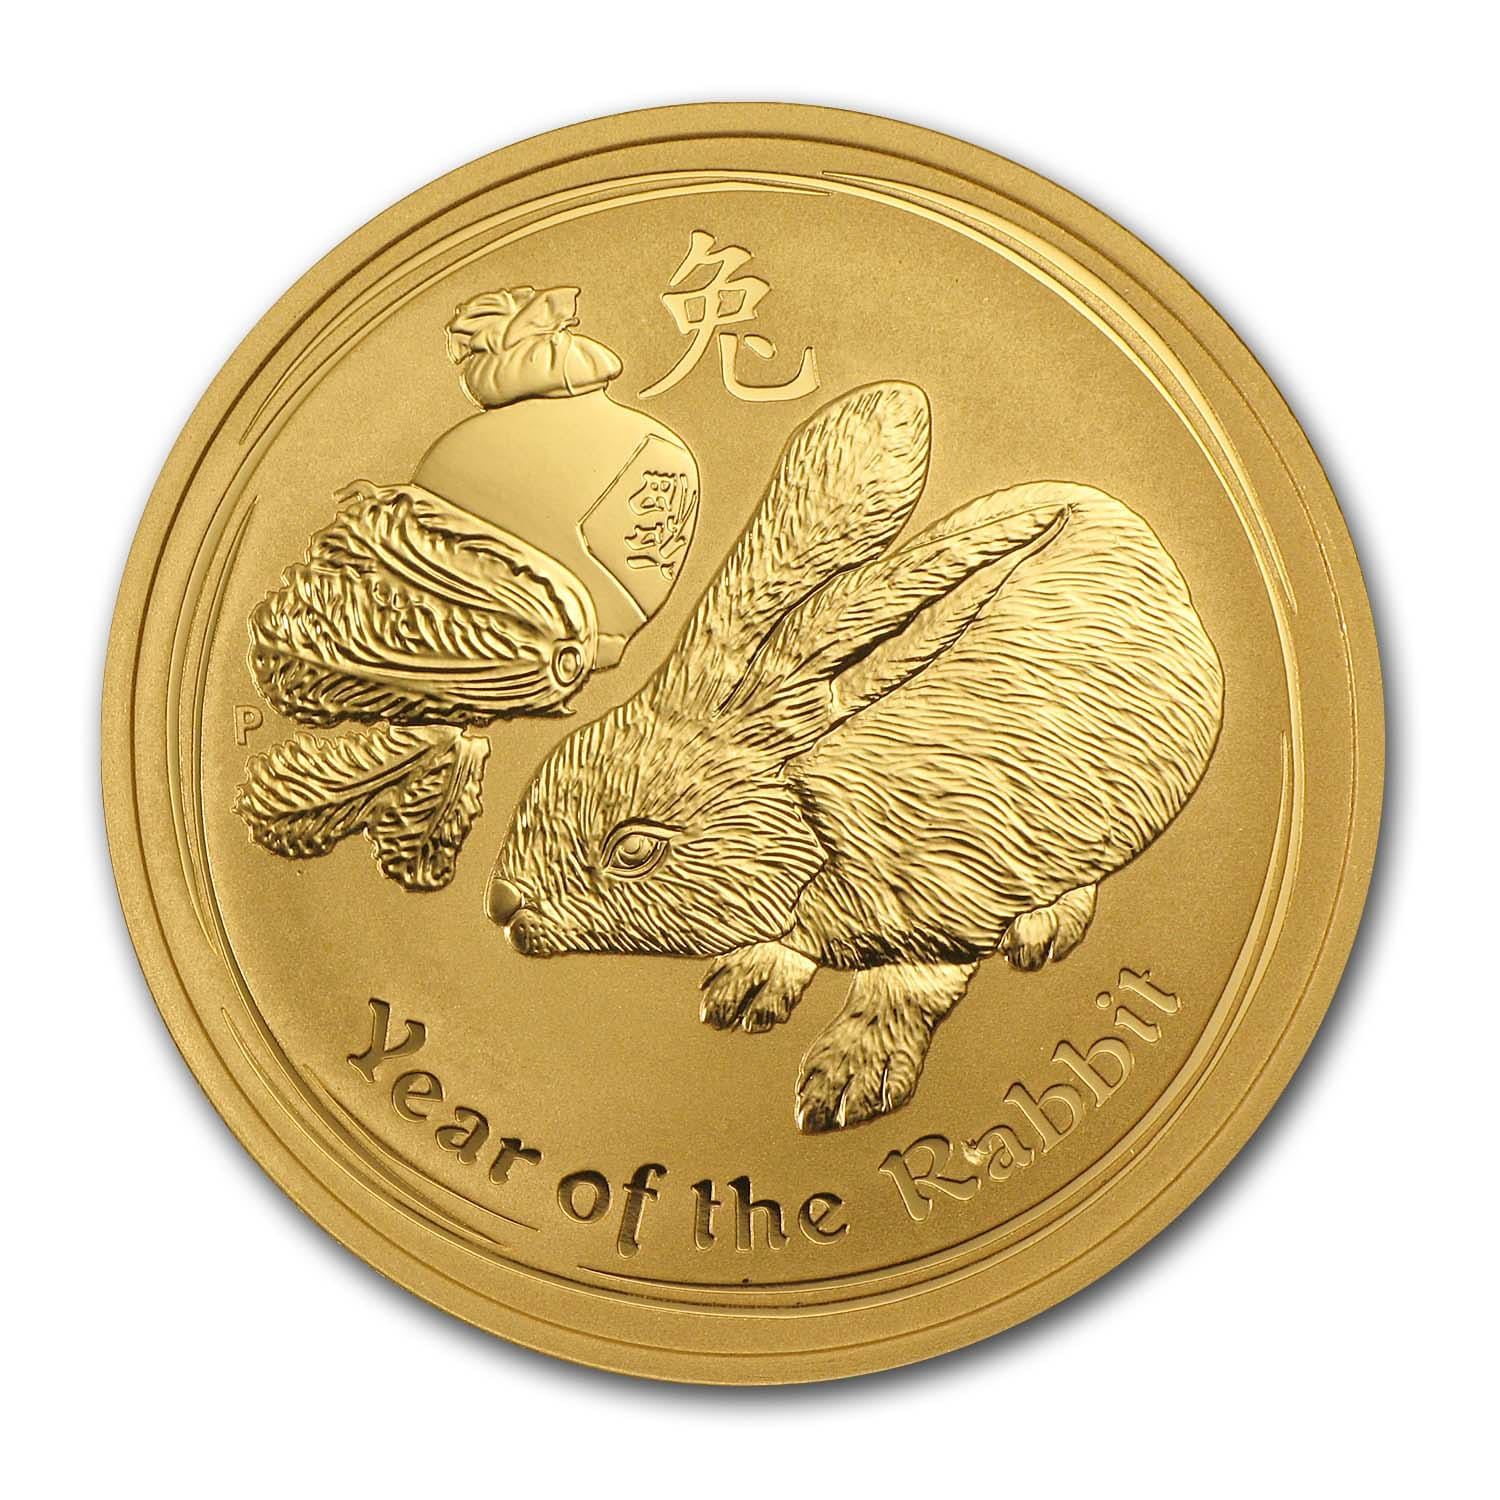 2011 Gold 1 oz Lunar Year of the Rabbit BU (Series II)